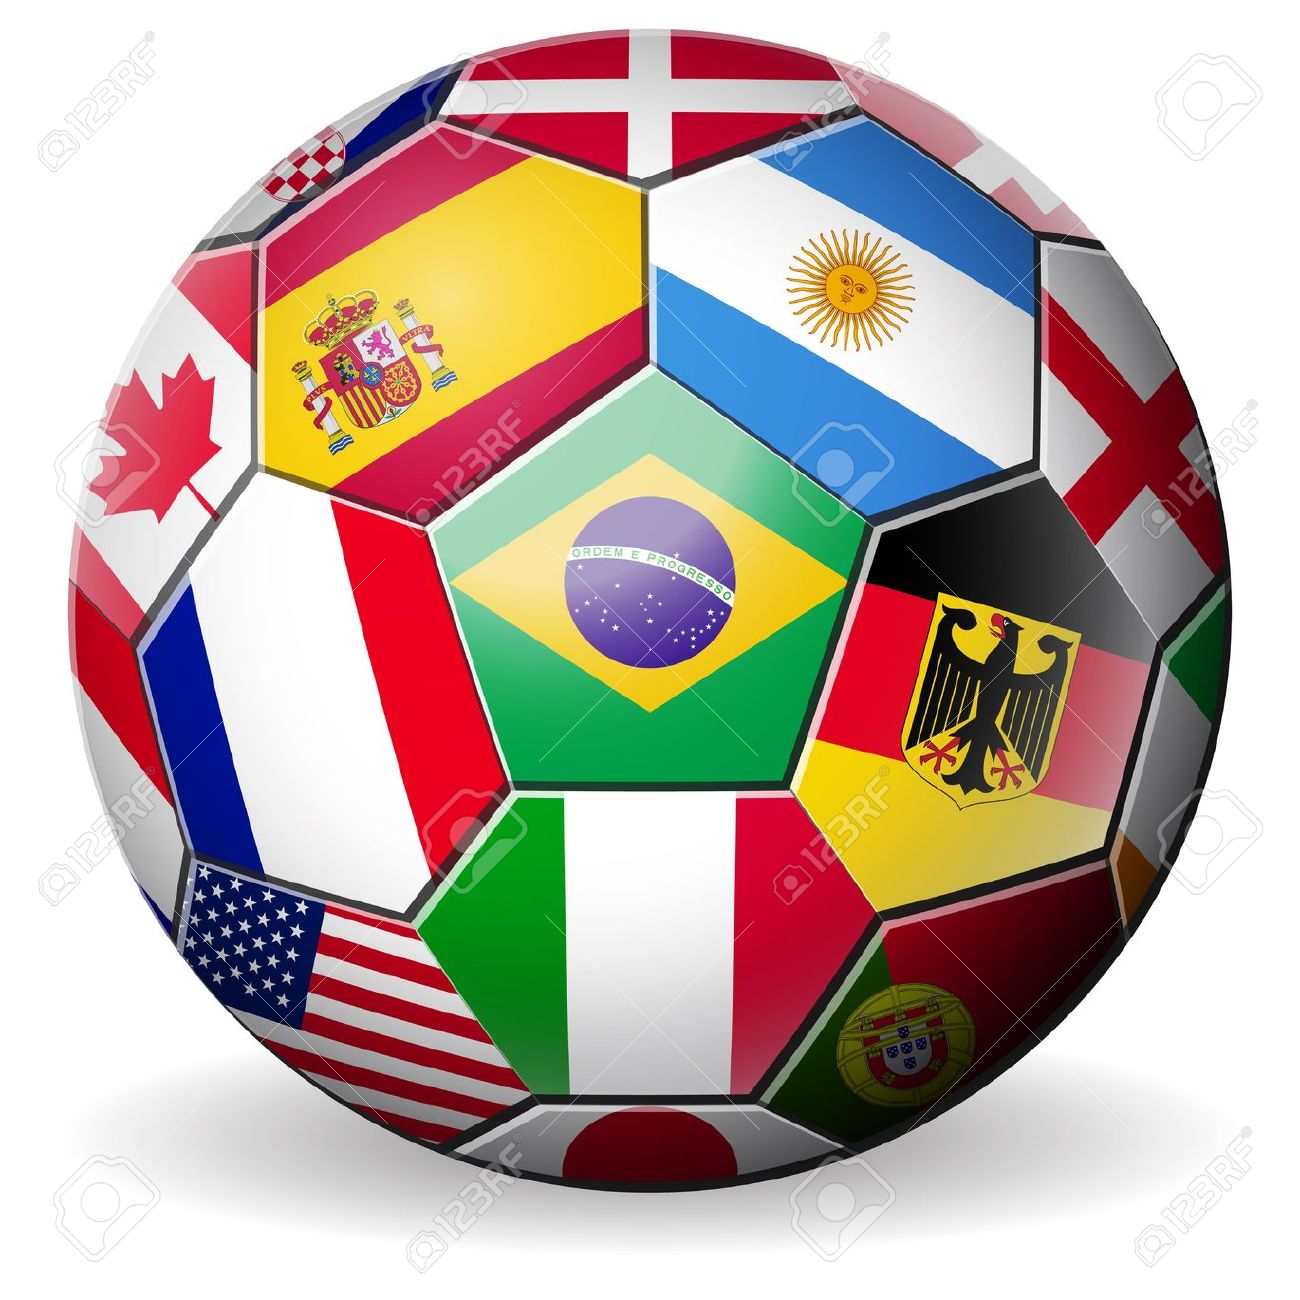 World Cup Soccer Clipart 20 Free Cliparts